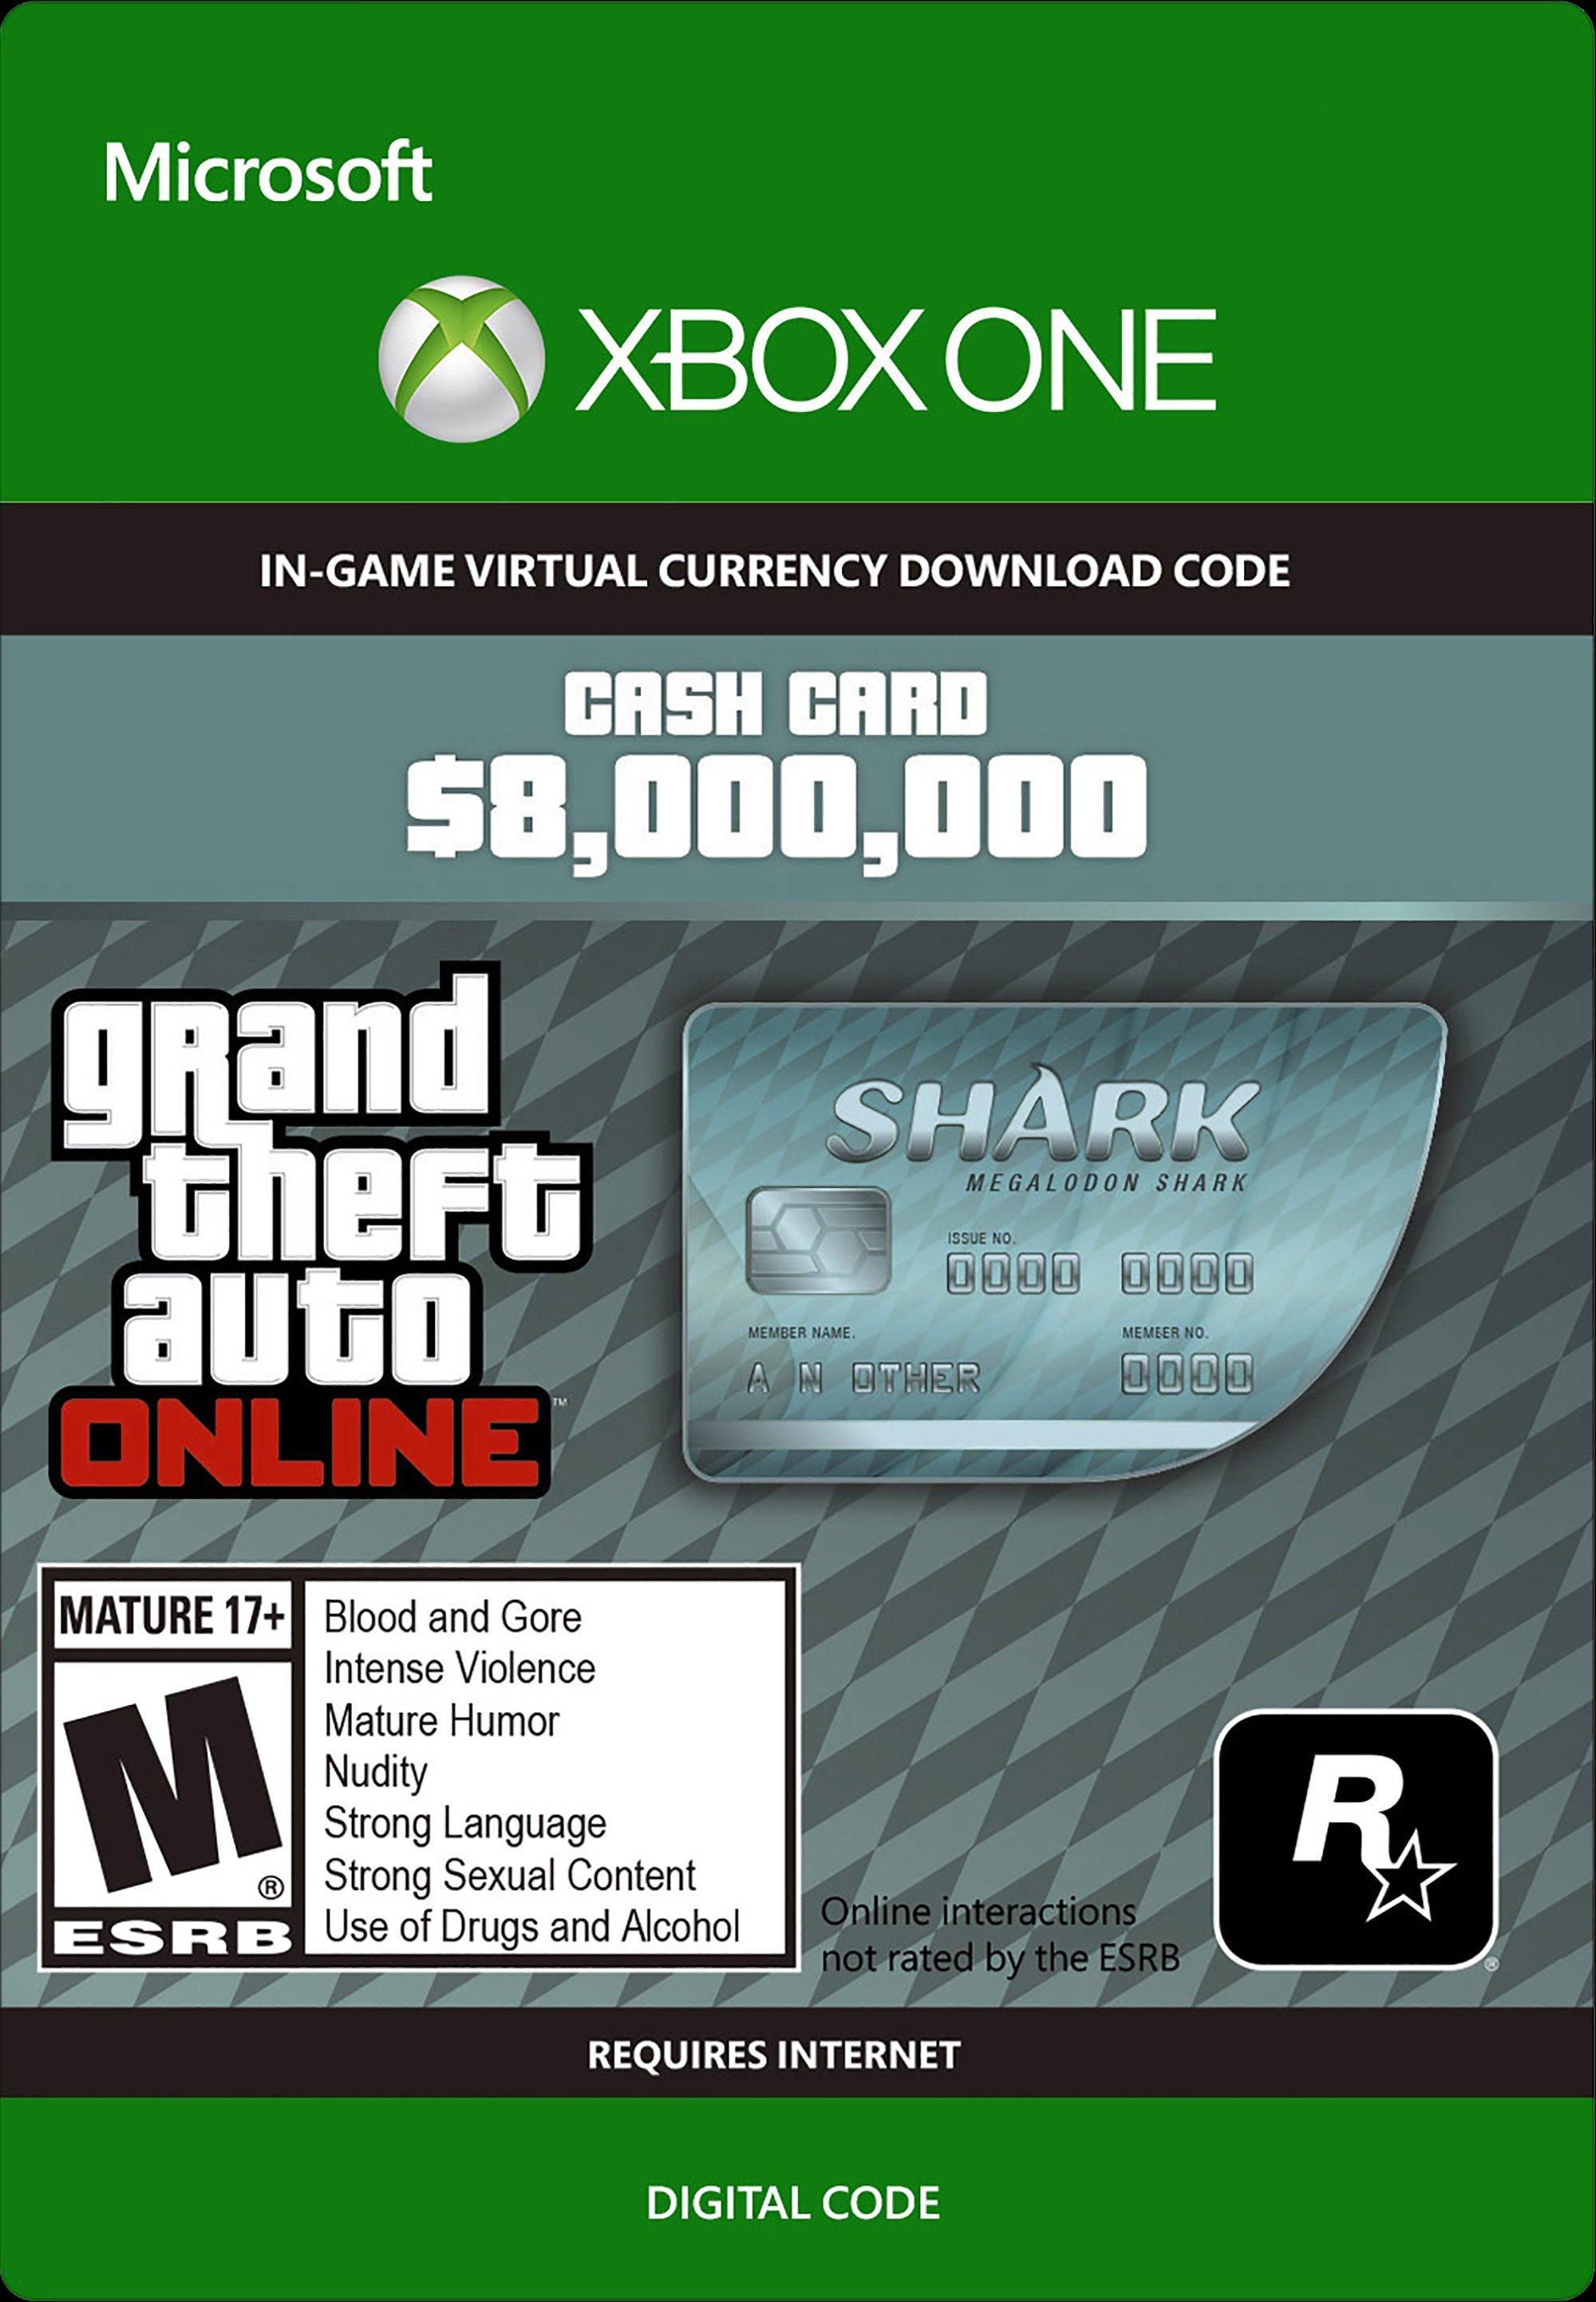 Grand Theft Auto Online: The Megalodon Shark Cash Card | Xbox One | GameStop